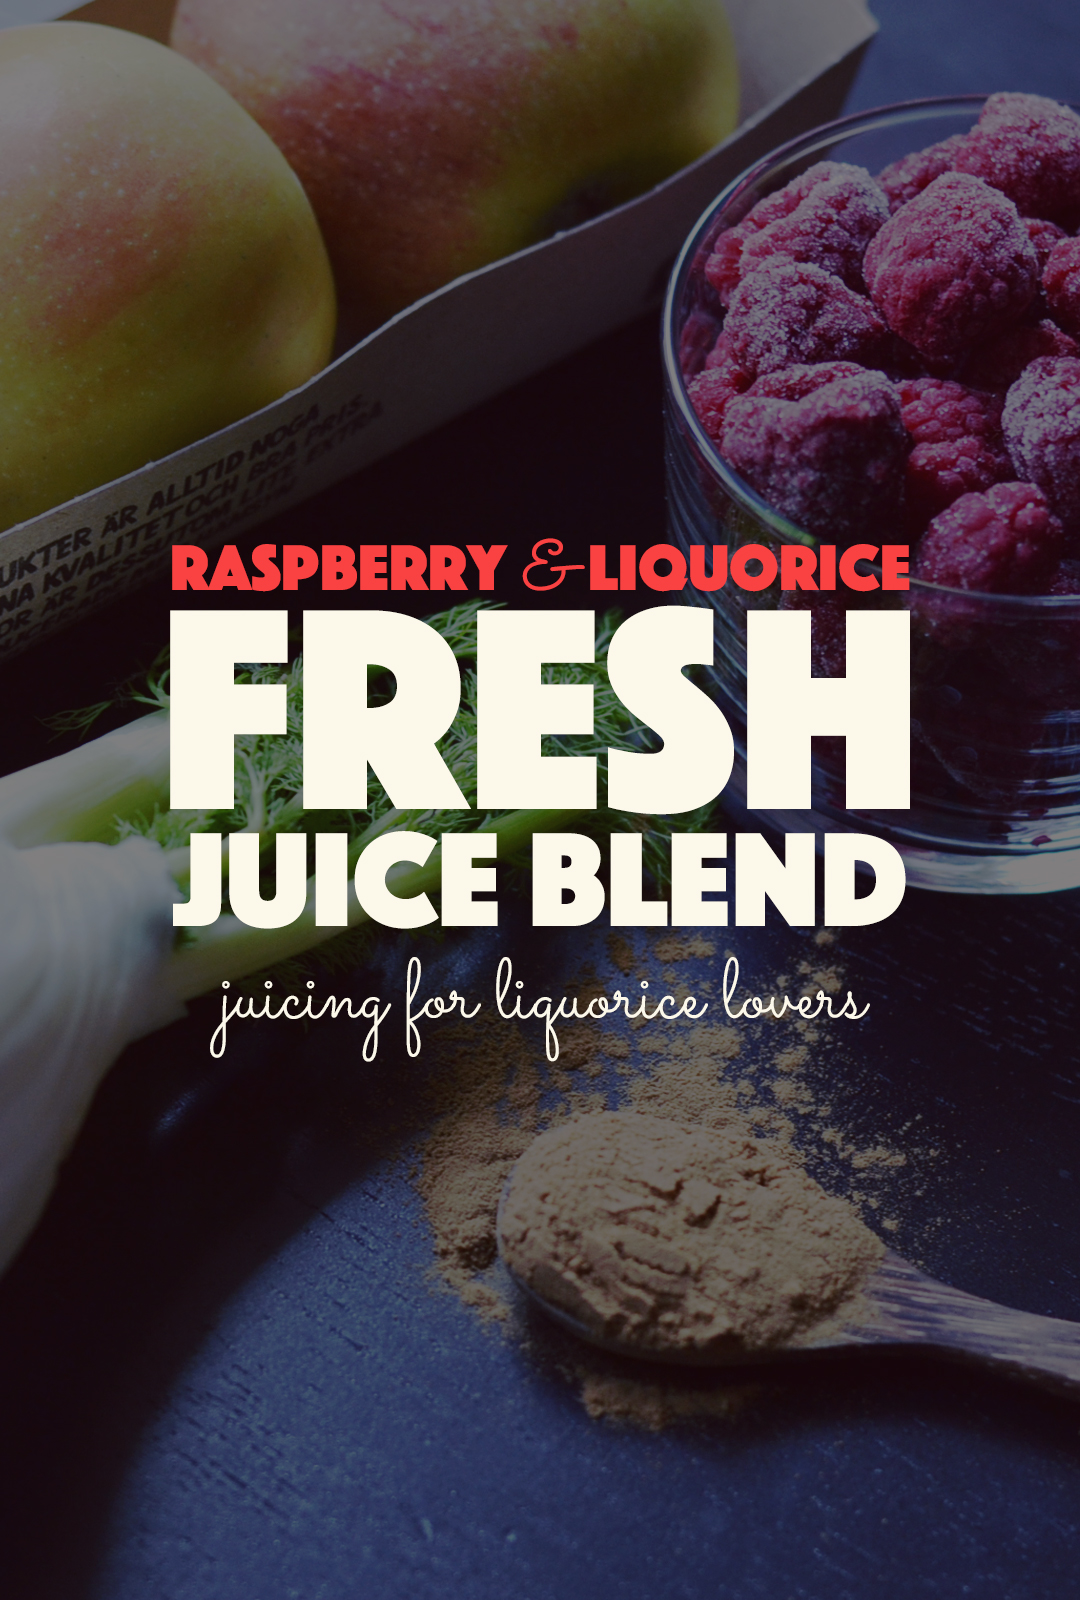 Raspberry & Liquorice Juice Blend | http://BananaBloom.com